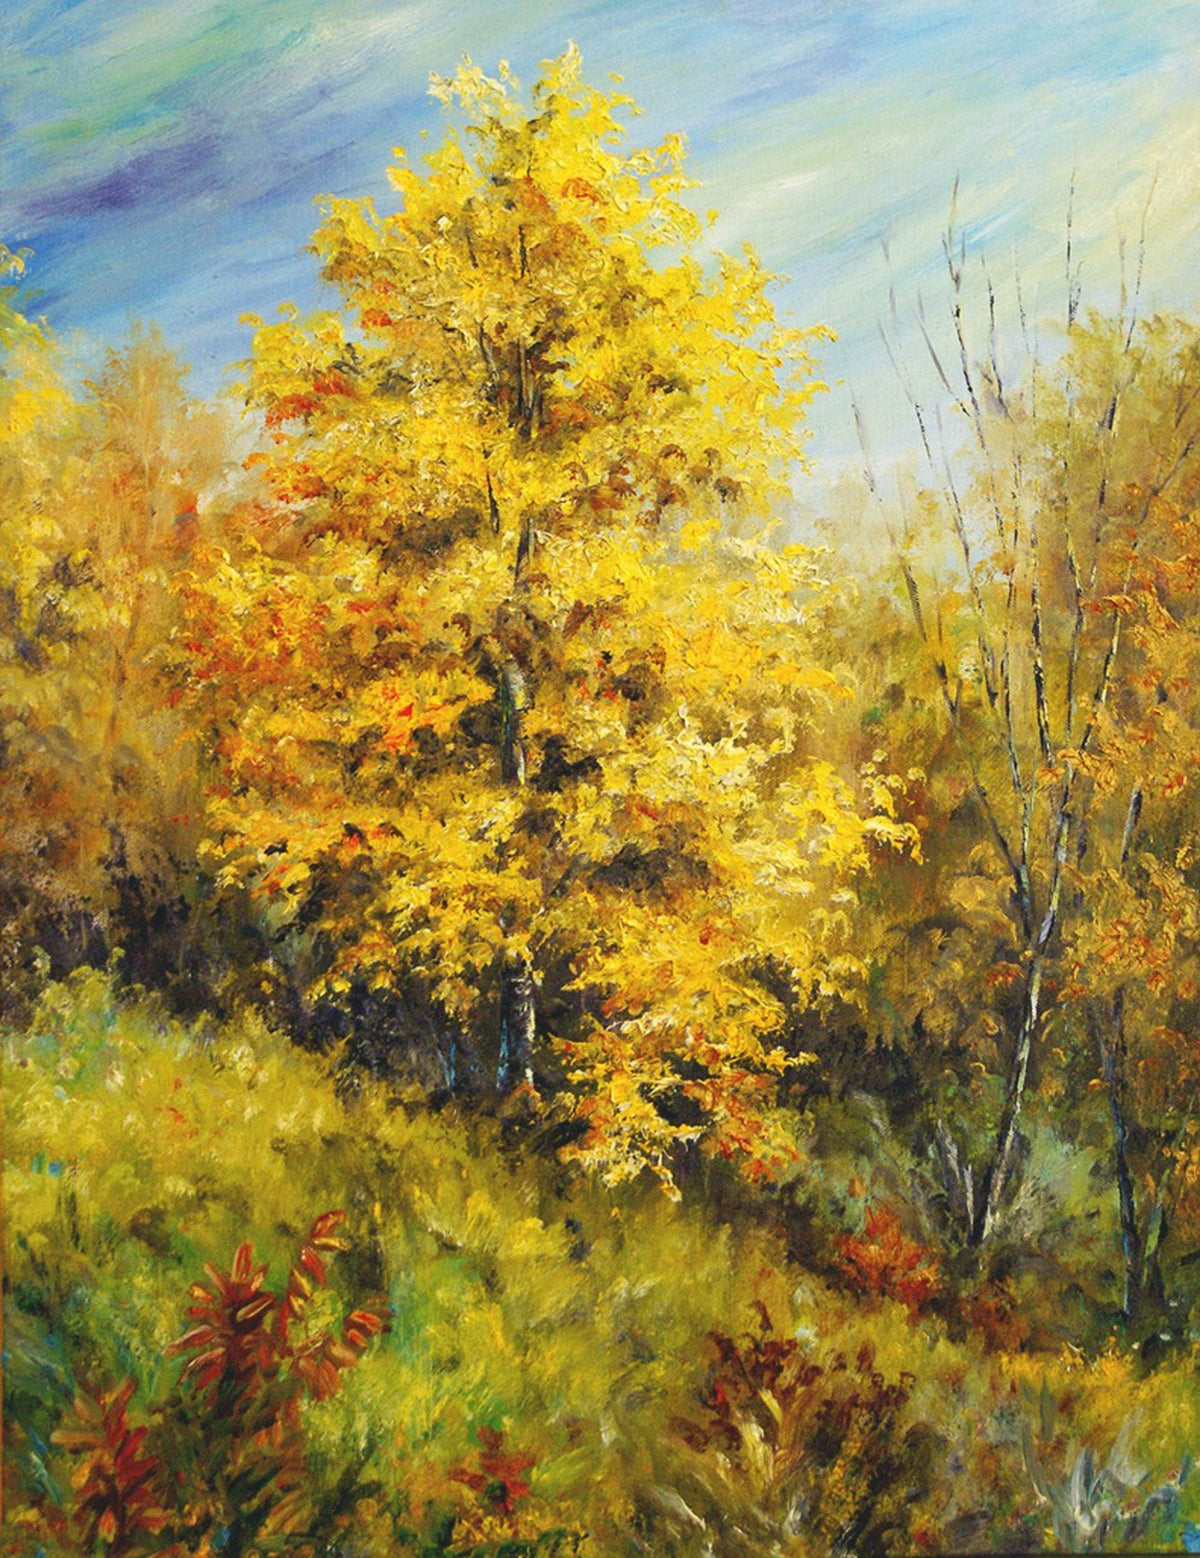 """Poplar Colors"" by J K (Karen) Phillips Sewell, Reproduction"